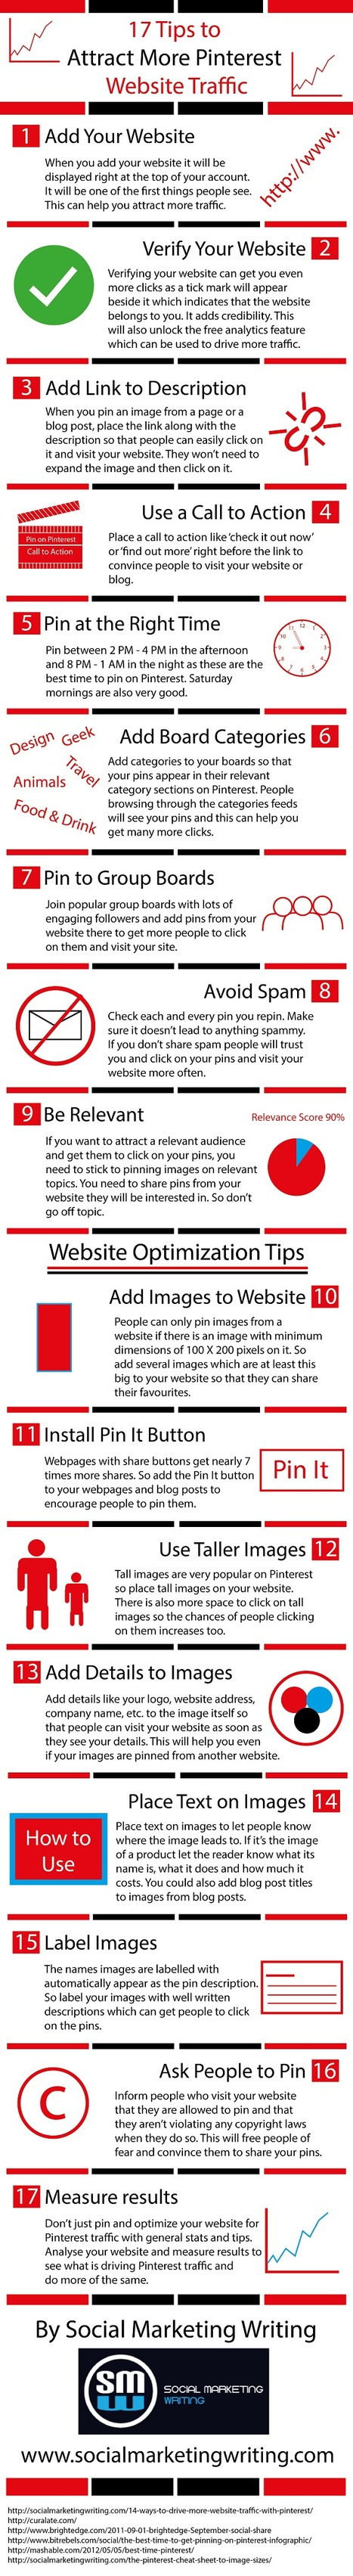 17 Tips To Attract More Pinterest Website Traffic (Infographic) - Business 2 Community | Better know and better use Social Media today (facebook, twitter...) | Scoop.it